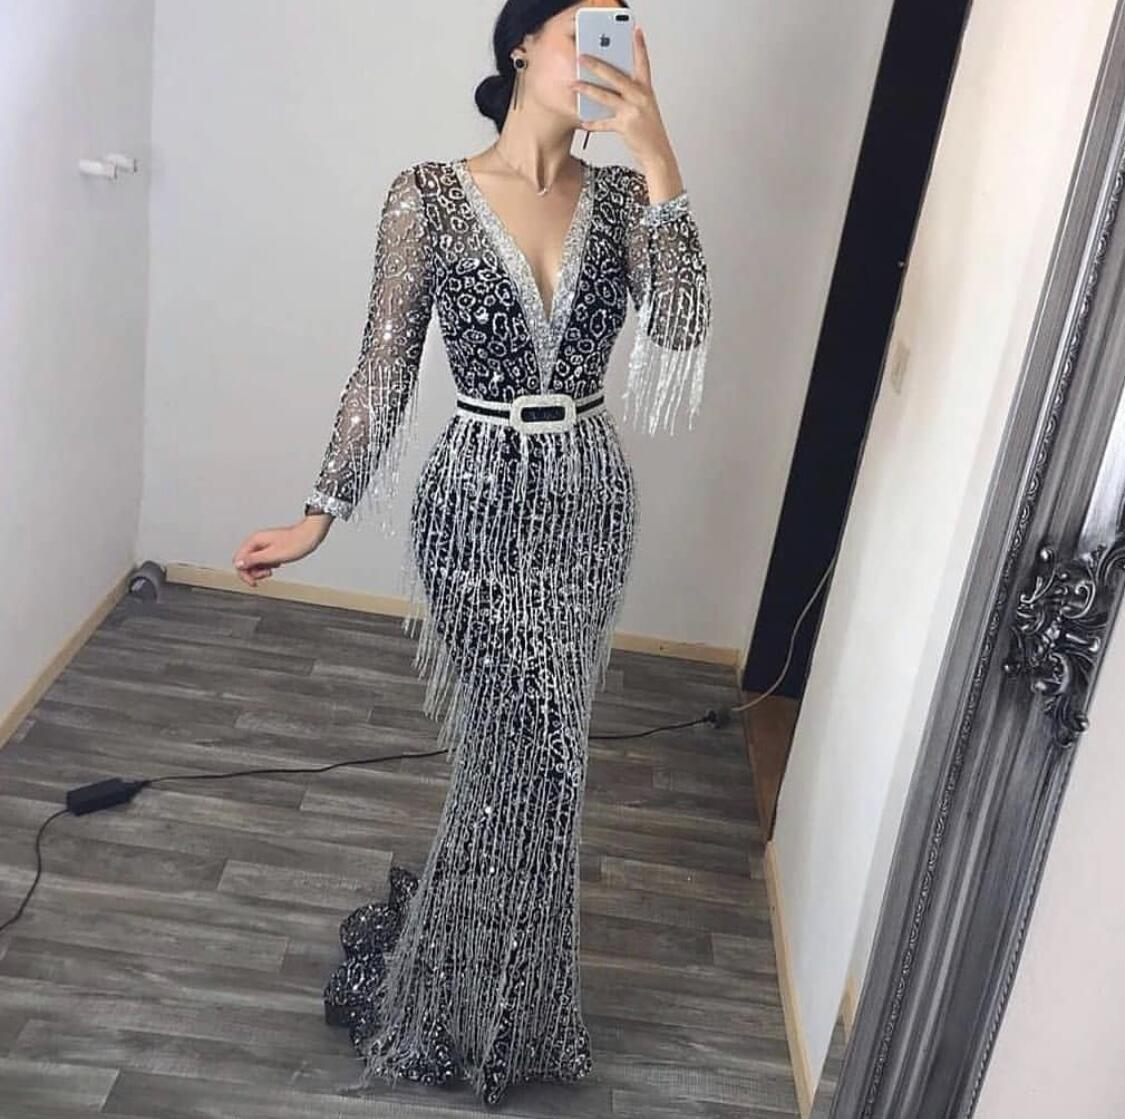 2020 winter European and American foreign trade women's new dress quick sale Amazon long sleeve Sequin tassel Dress NEW